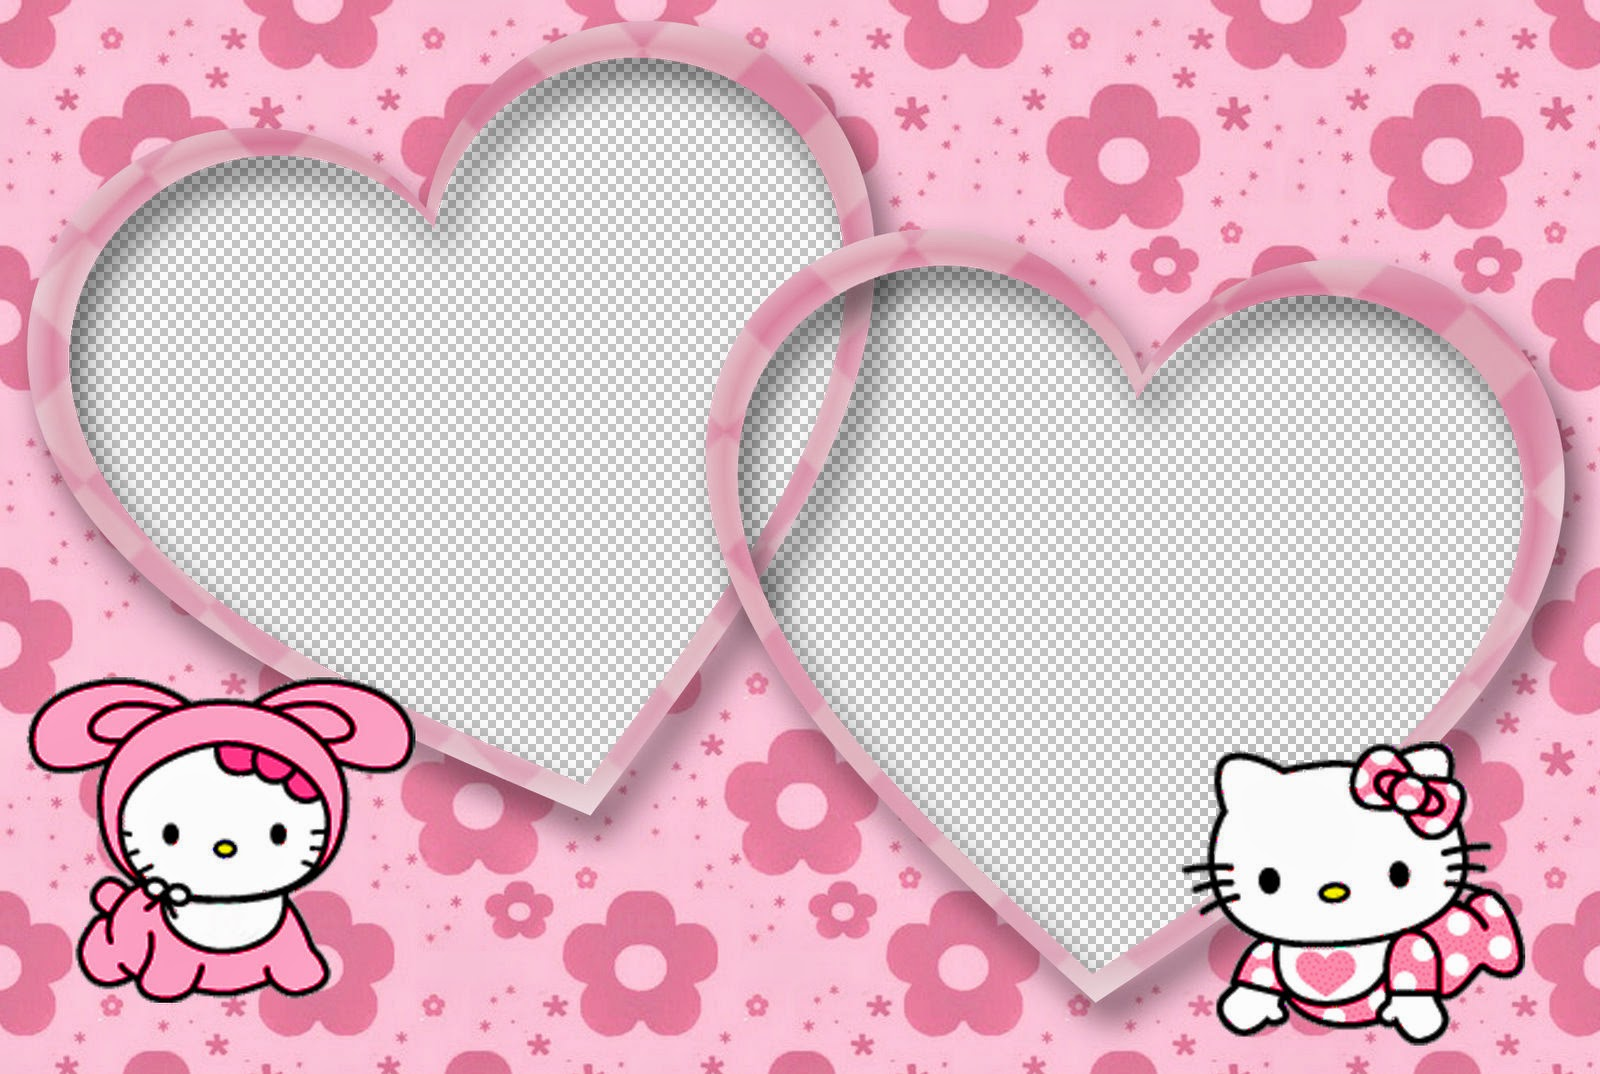 Hello Kitty Baby Free Printable Invitations, Cards, Frames or Backgrounds.